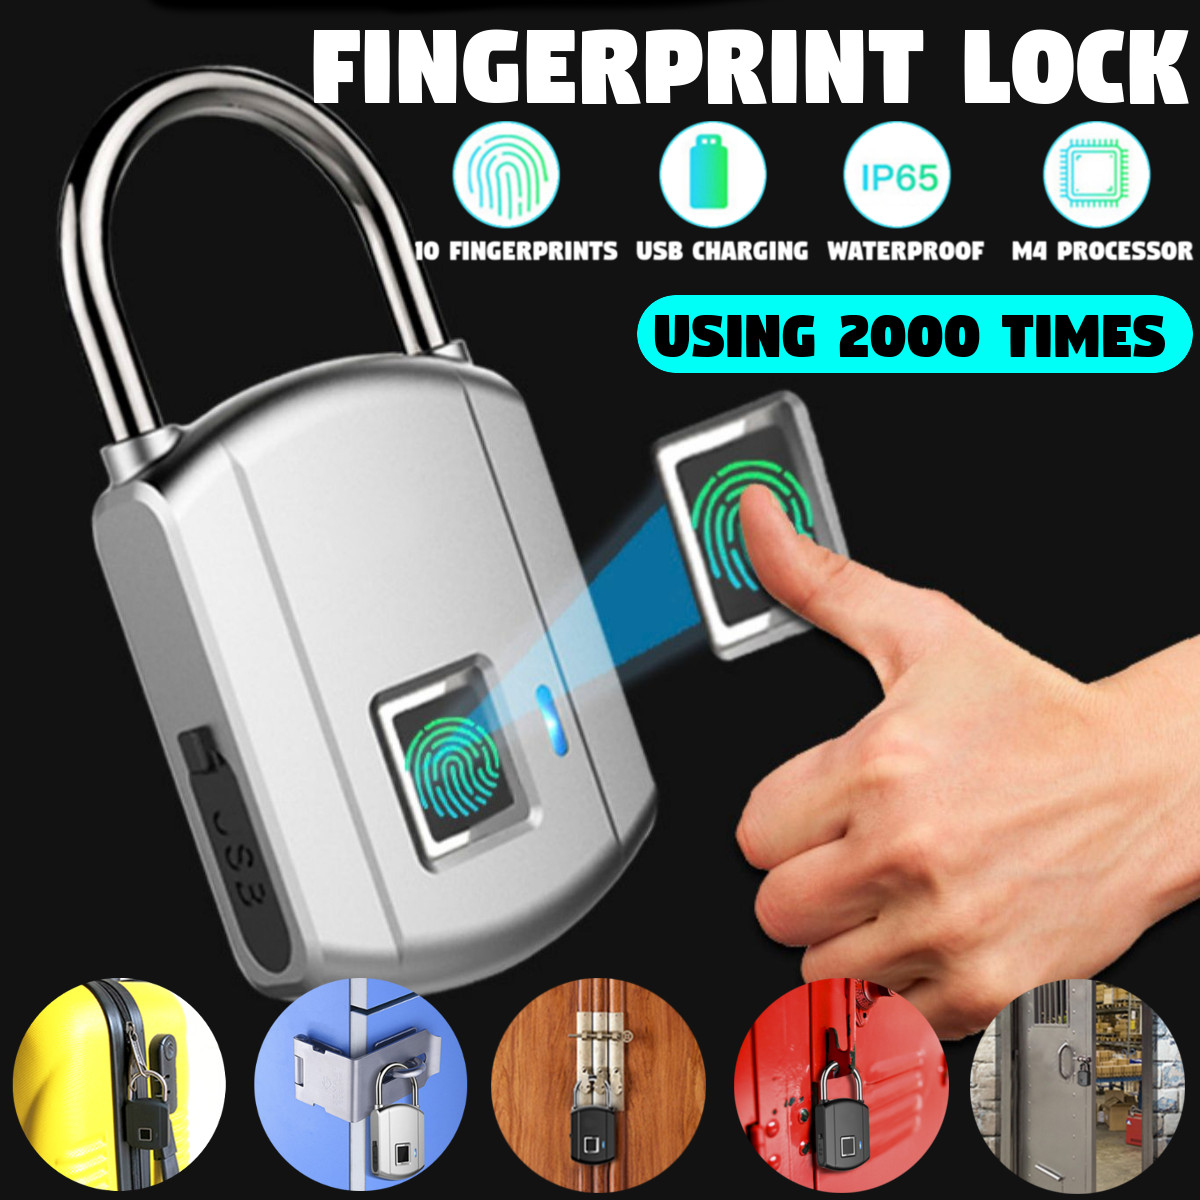 Rechargeable Smart Keyless Electronic Fingerprint Lock USB Home Anti-theft Safety Security Padlock Door Luggage Case Lock